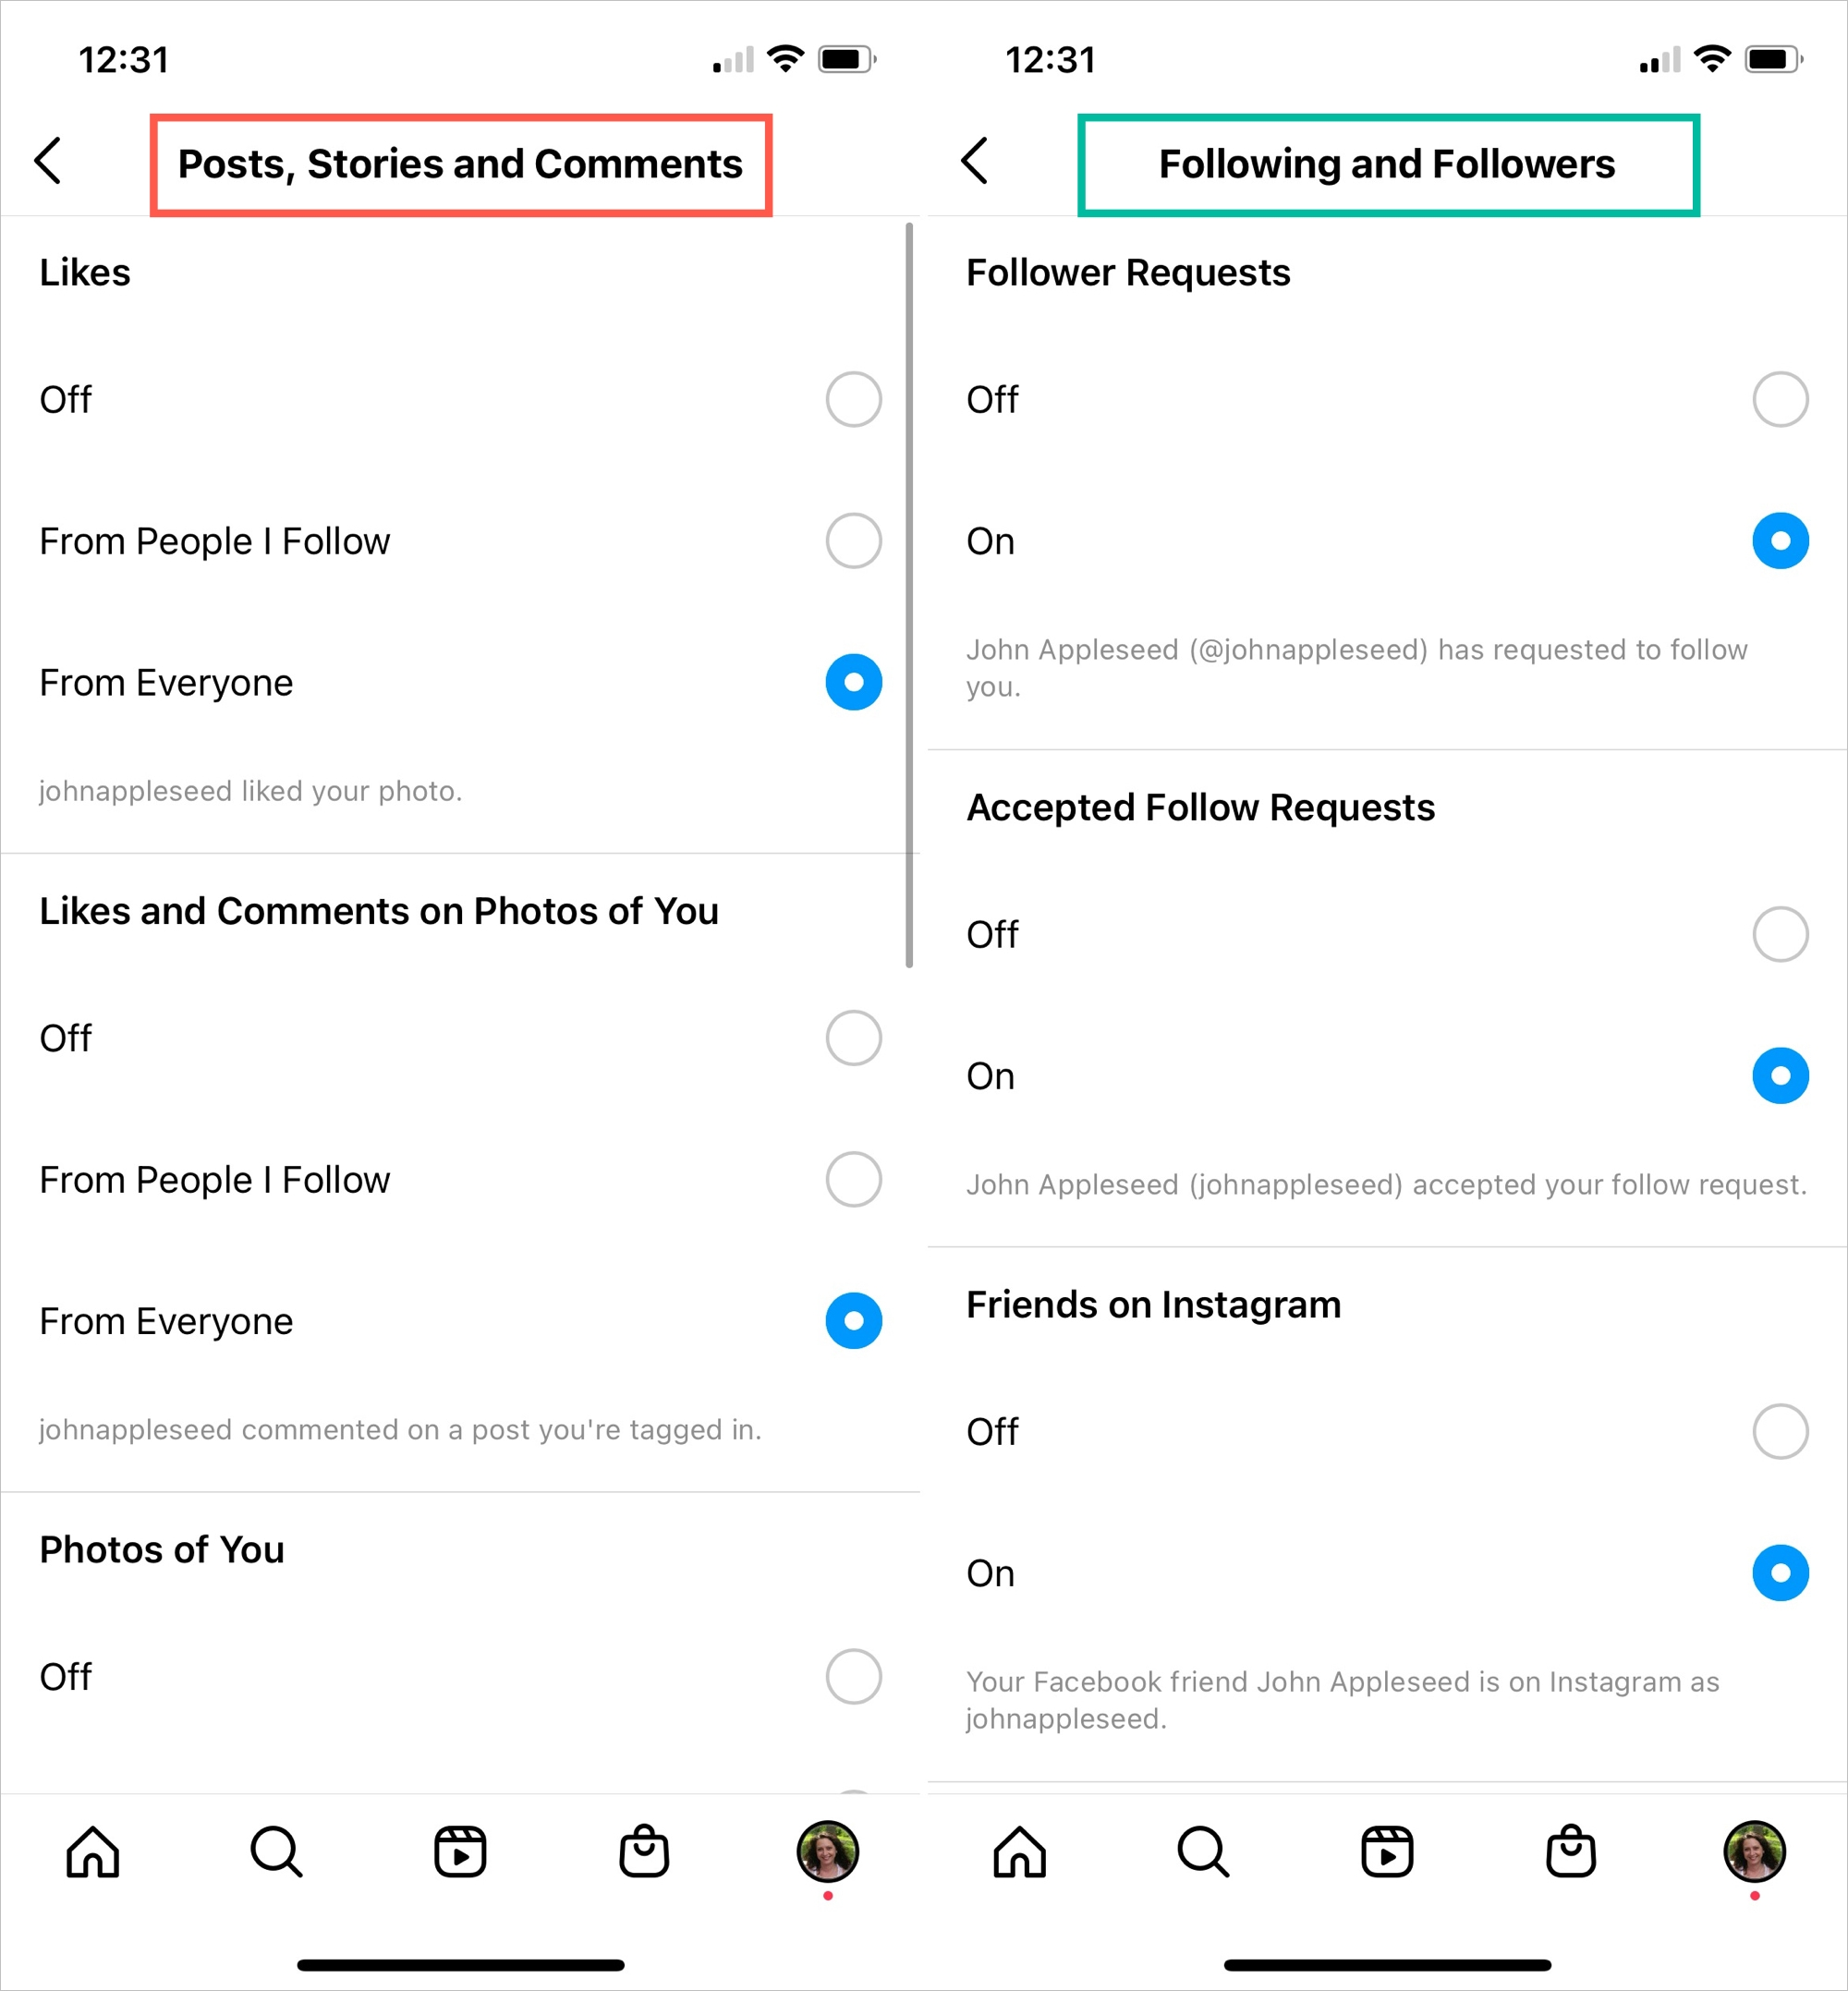 Instagram Notifications for Posts and Following